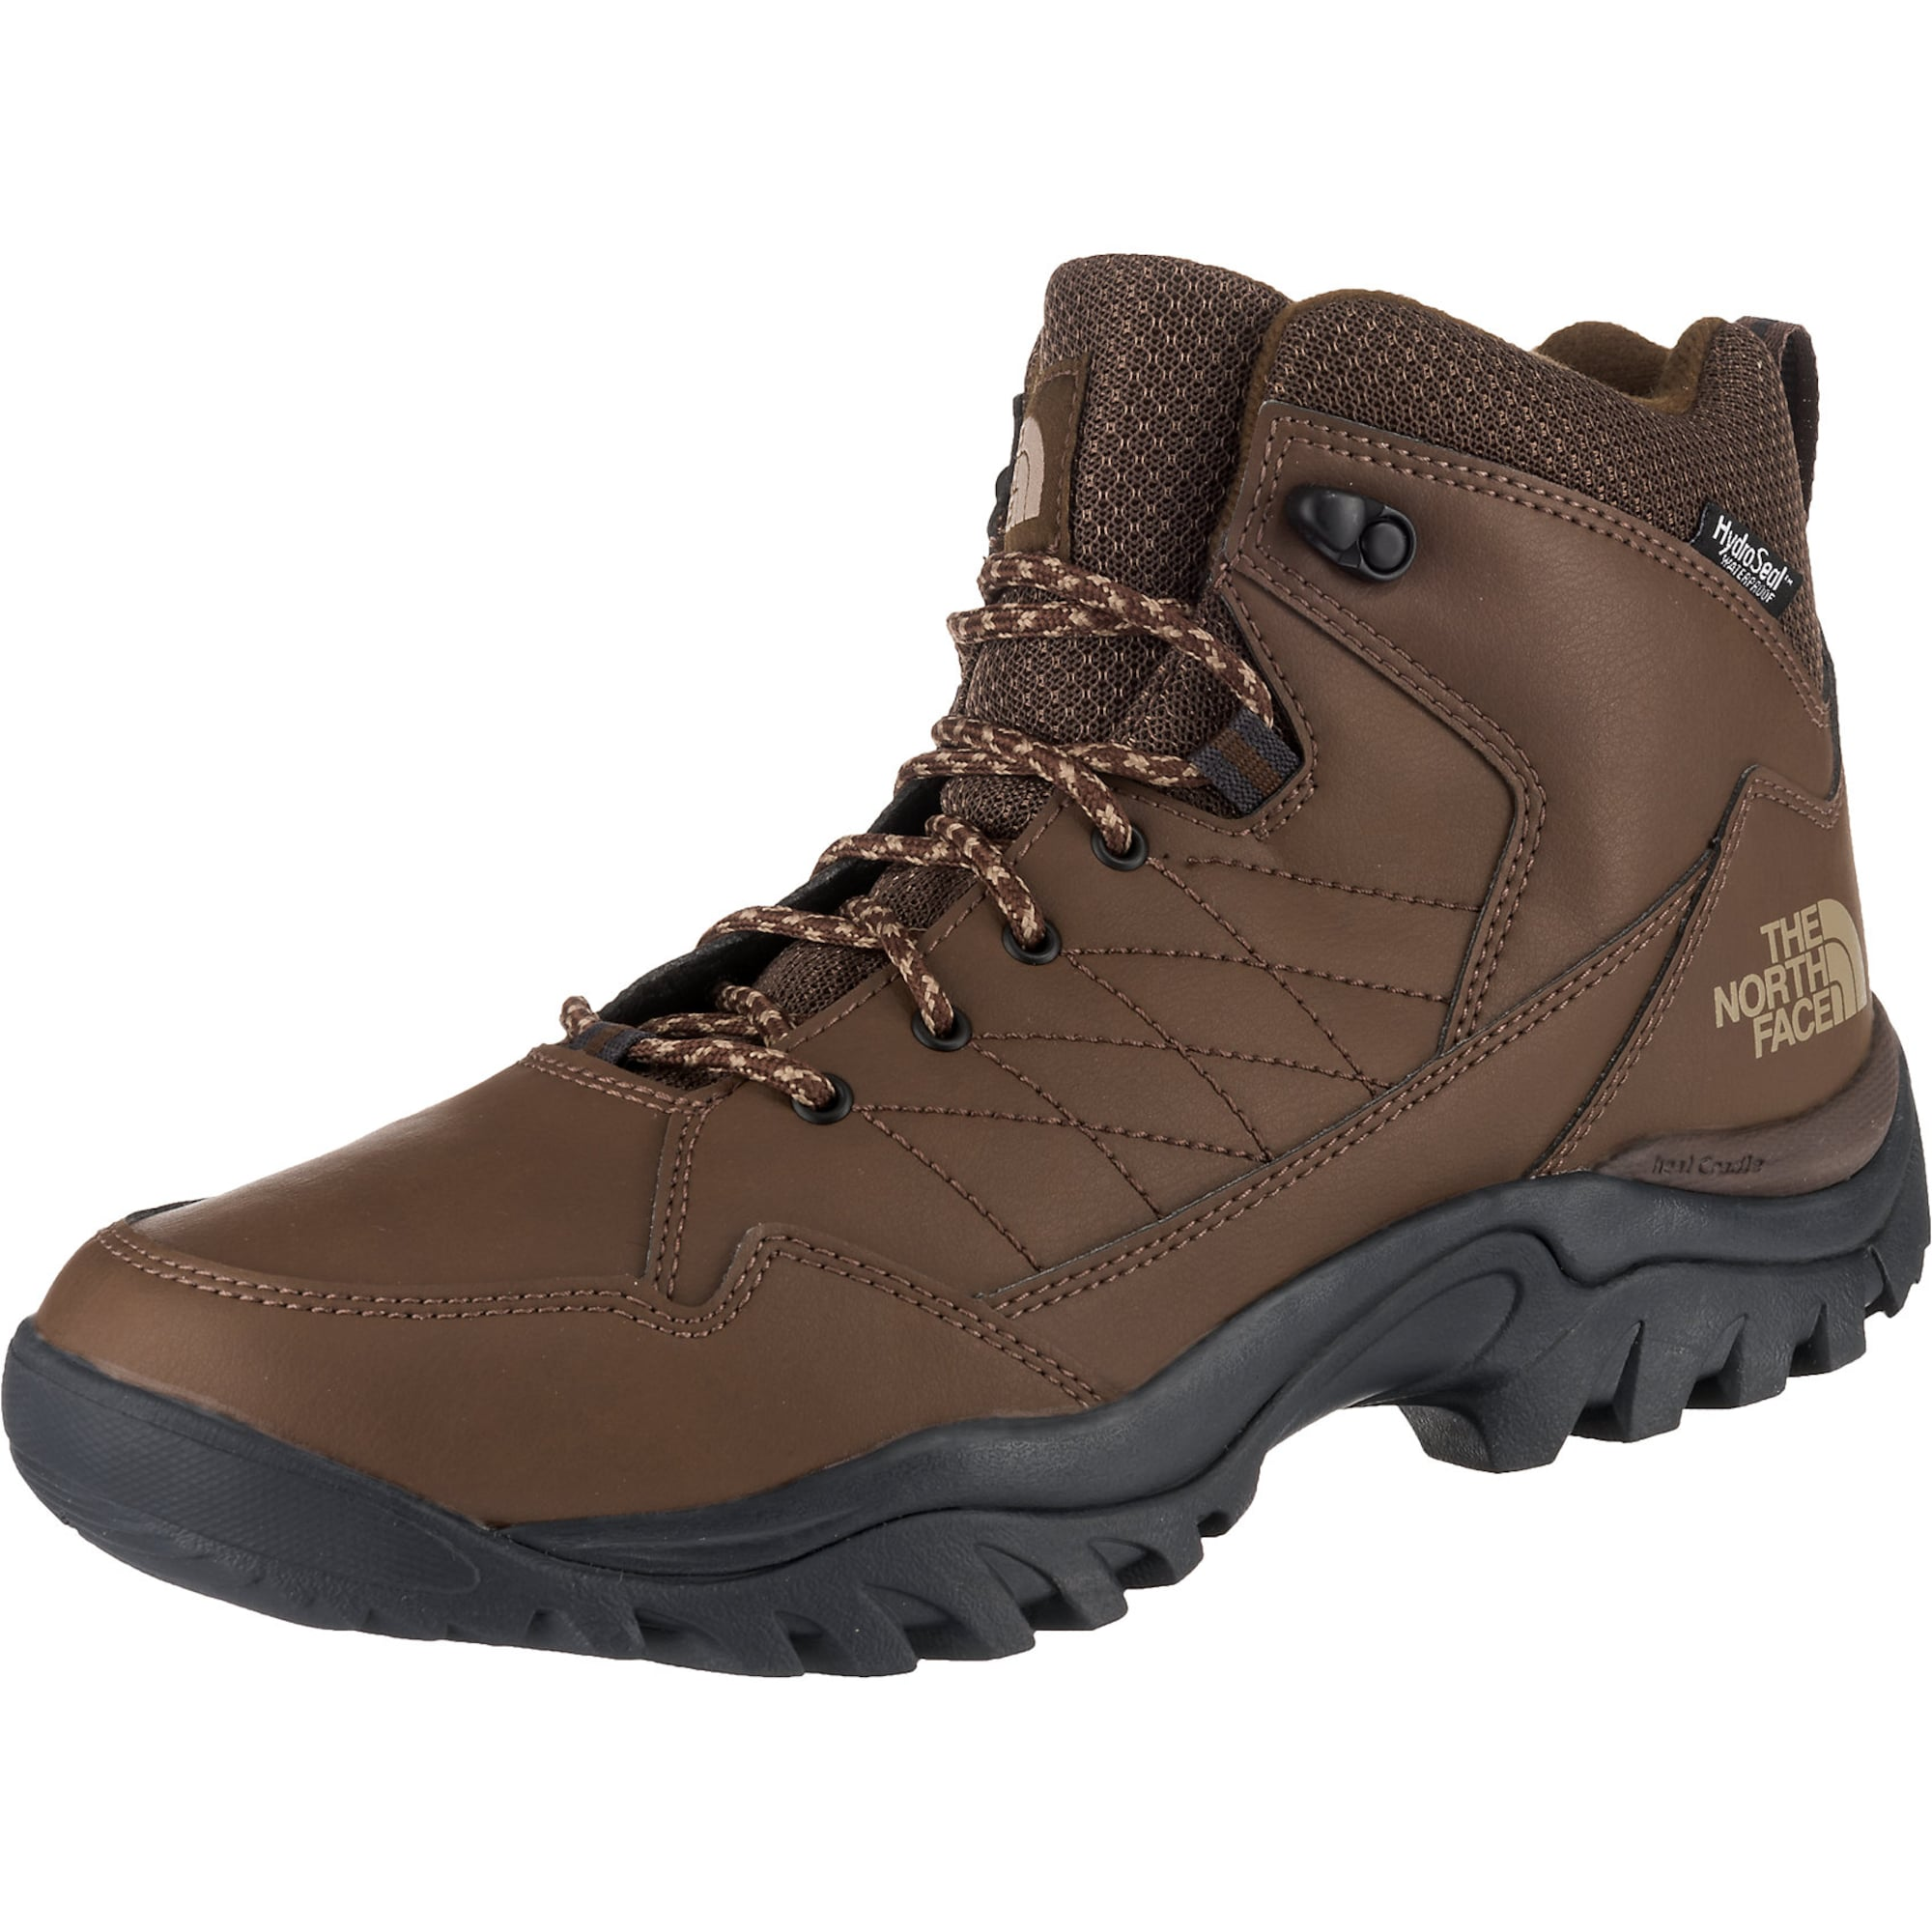 Wanderstiefel | Schuhe > Outdoorschuhe | The North Face